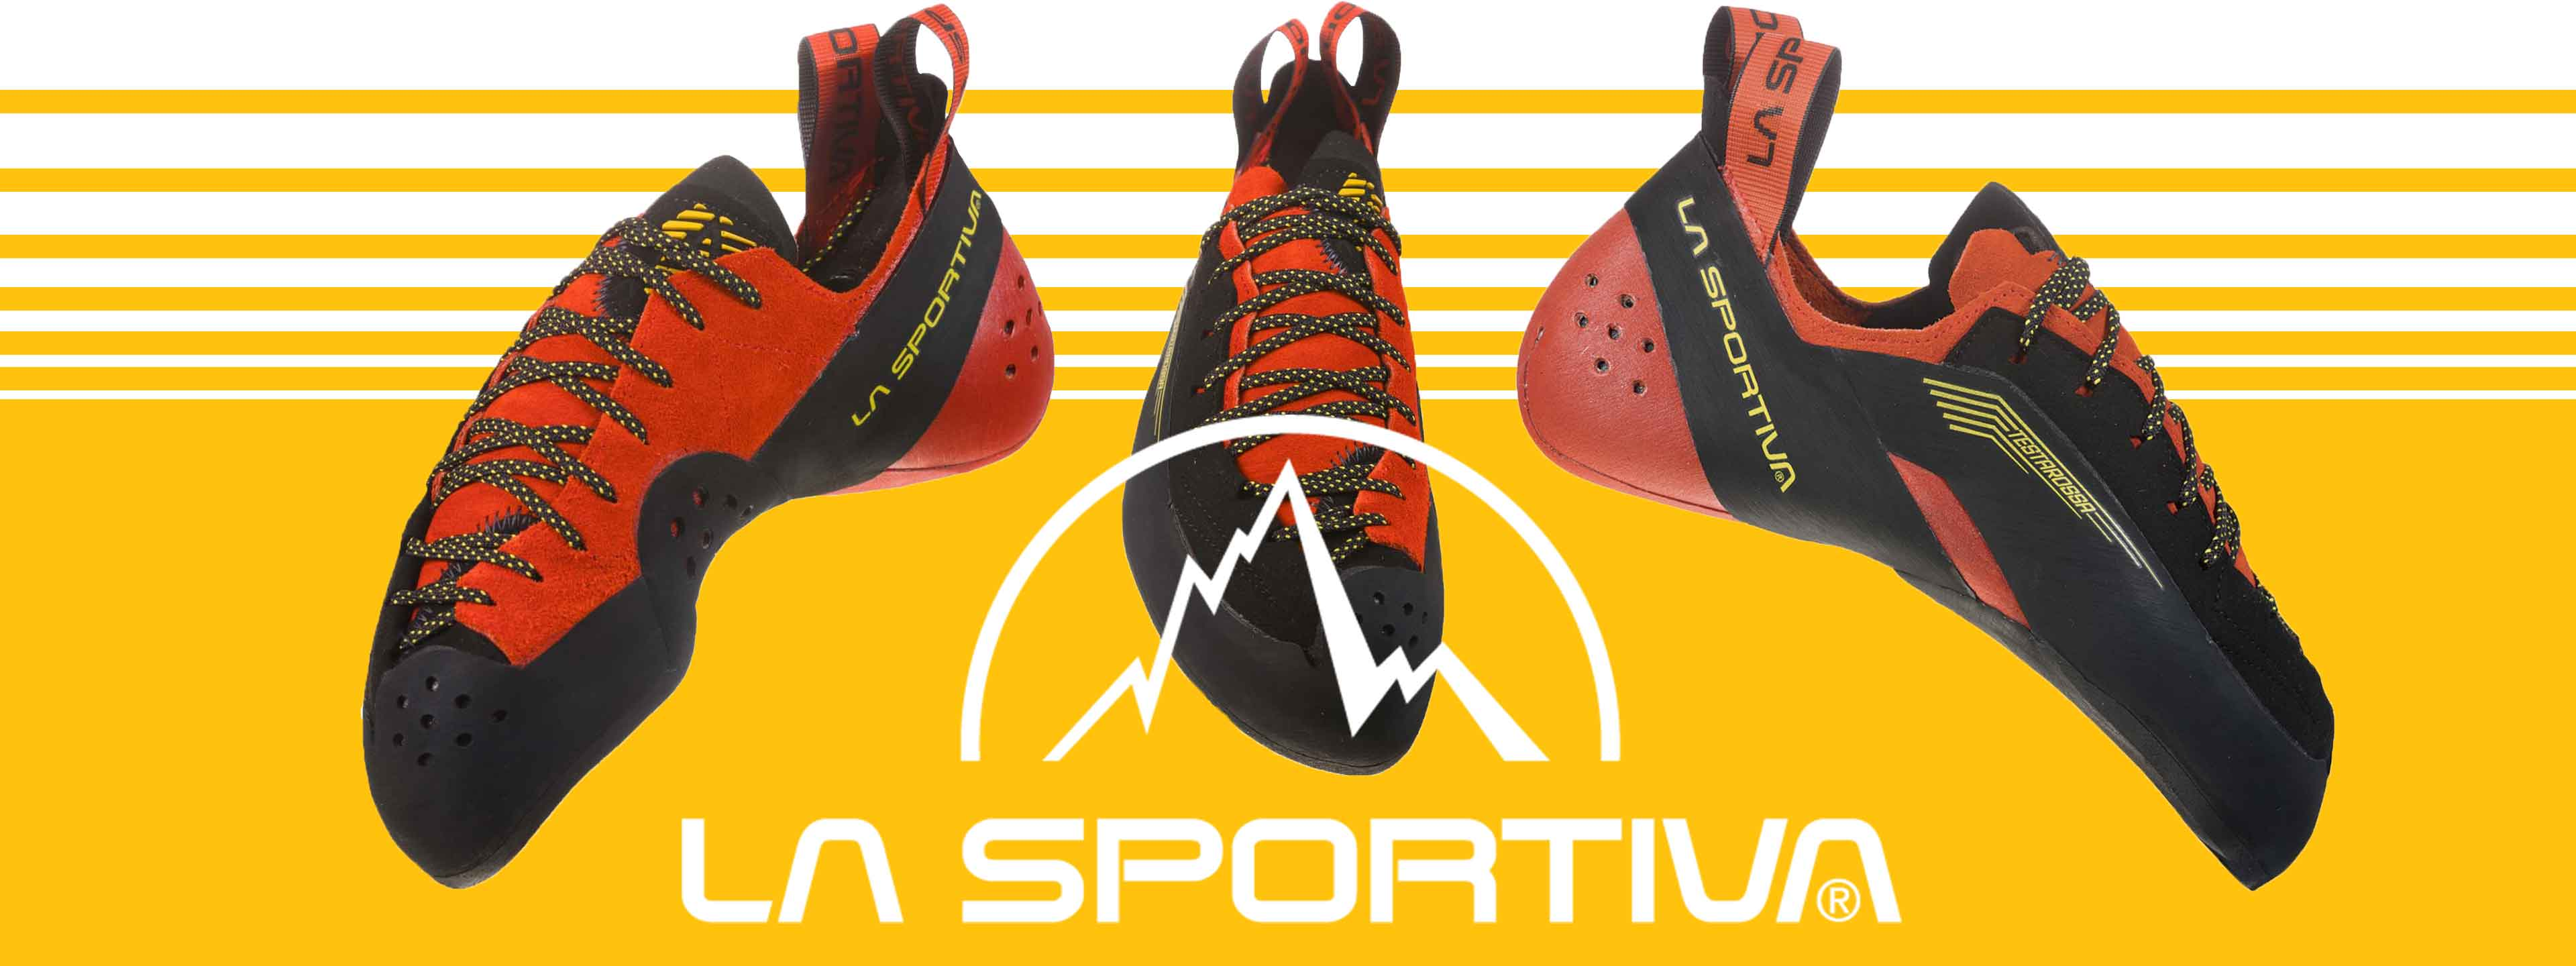 The new La Sportiva Testarossa rock climbing shoe